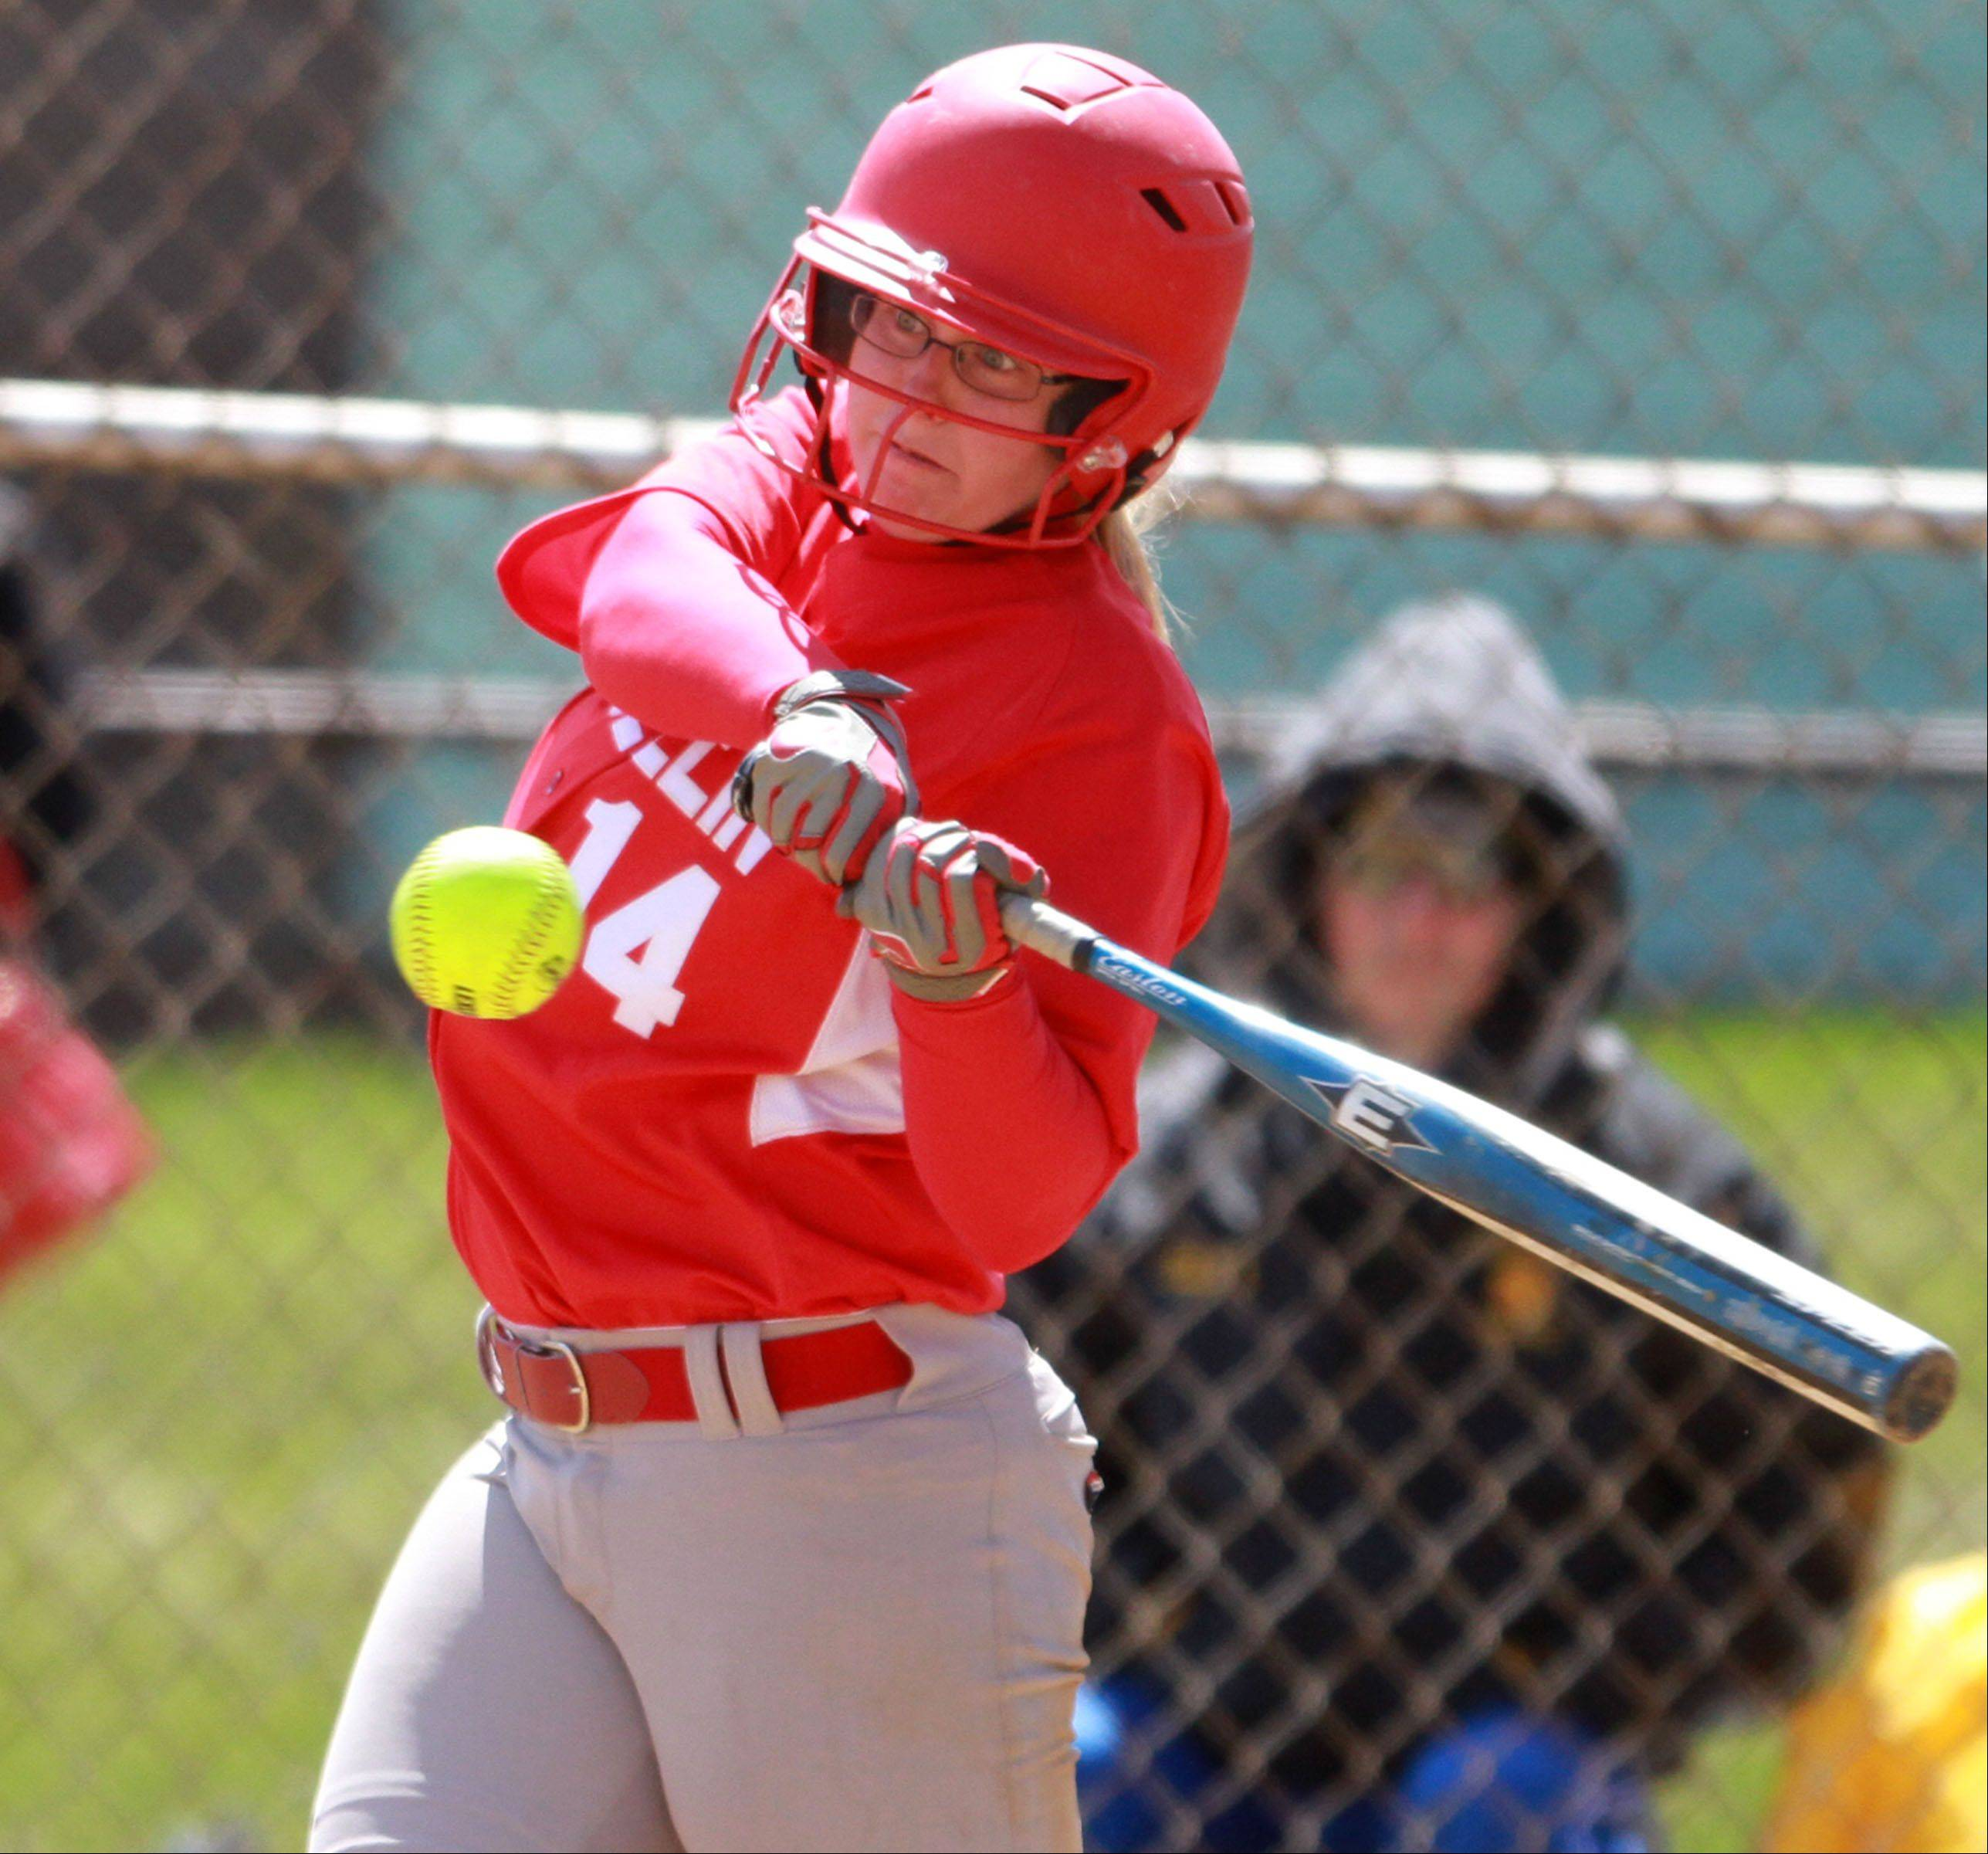 Mundelein's Abbey Rosenow at bat against Johnsburg at Mundelein on Saturday.